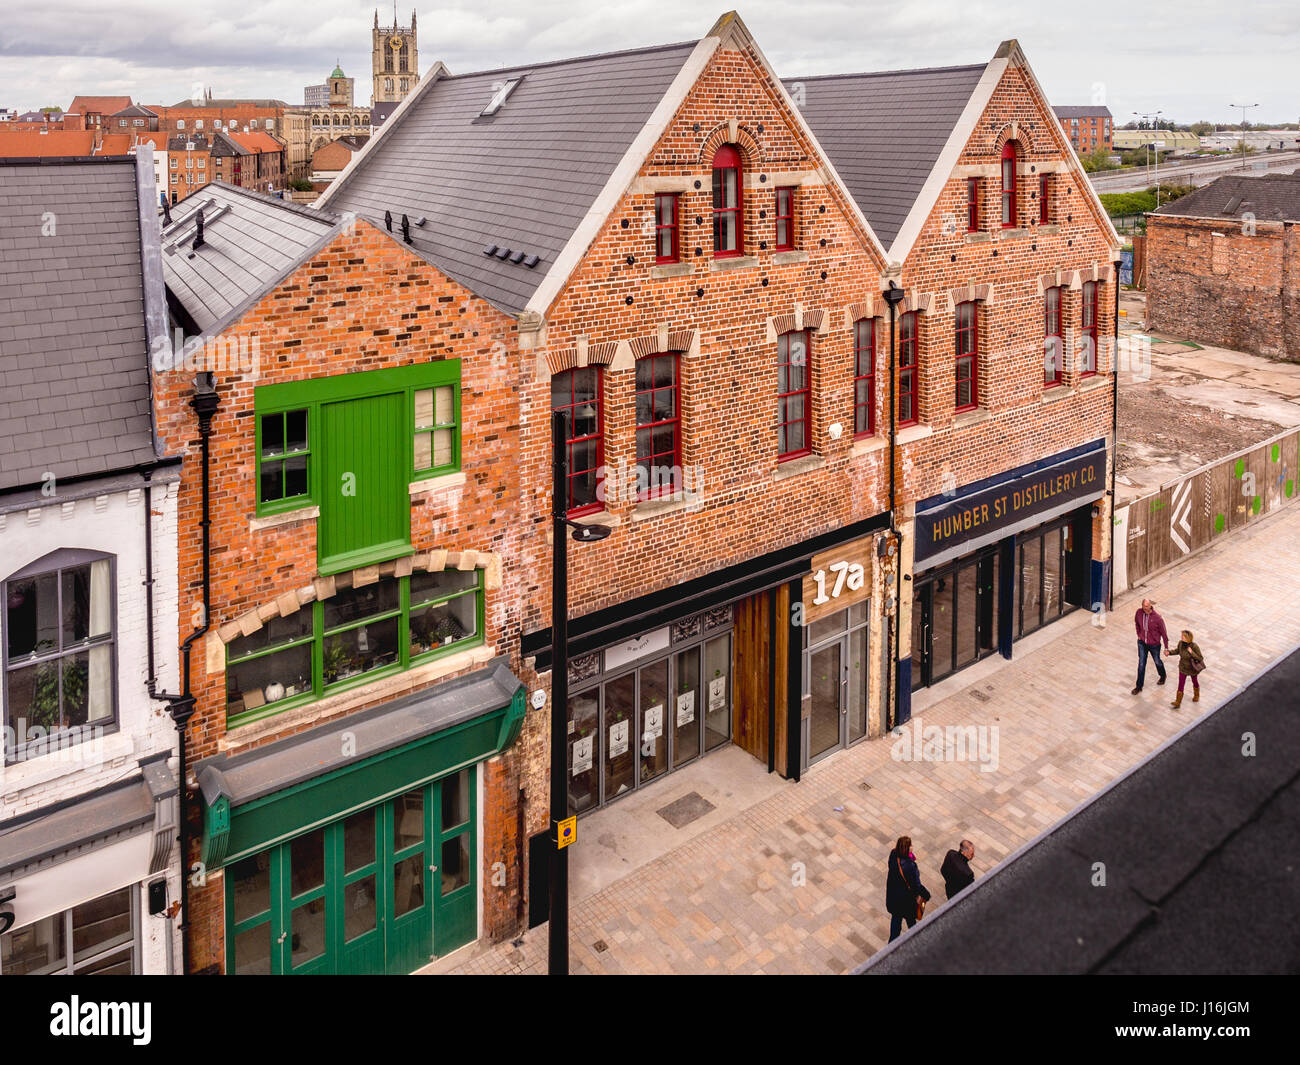 Humber Street, Fruit Market urban regeneration area in Hull dock area with Holy Trinity Church clock tower in distance, - Stock Image